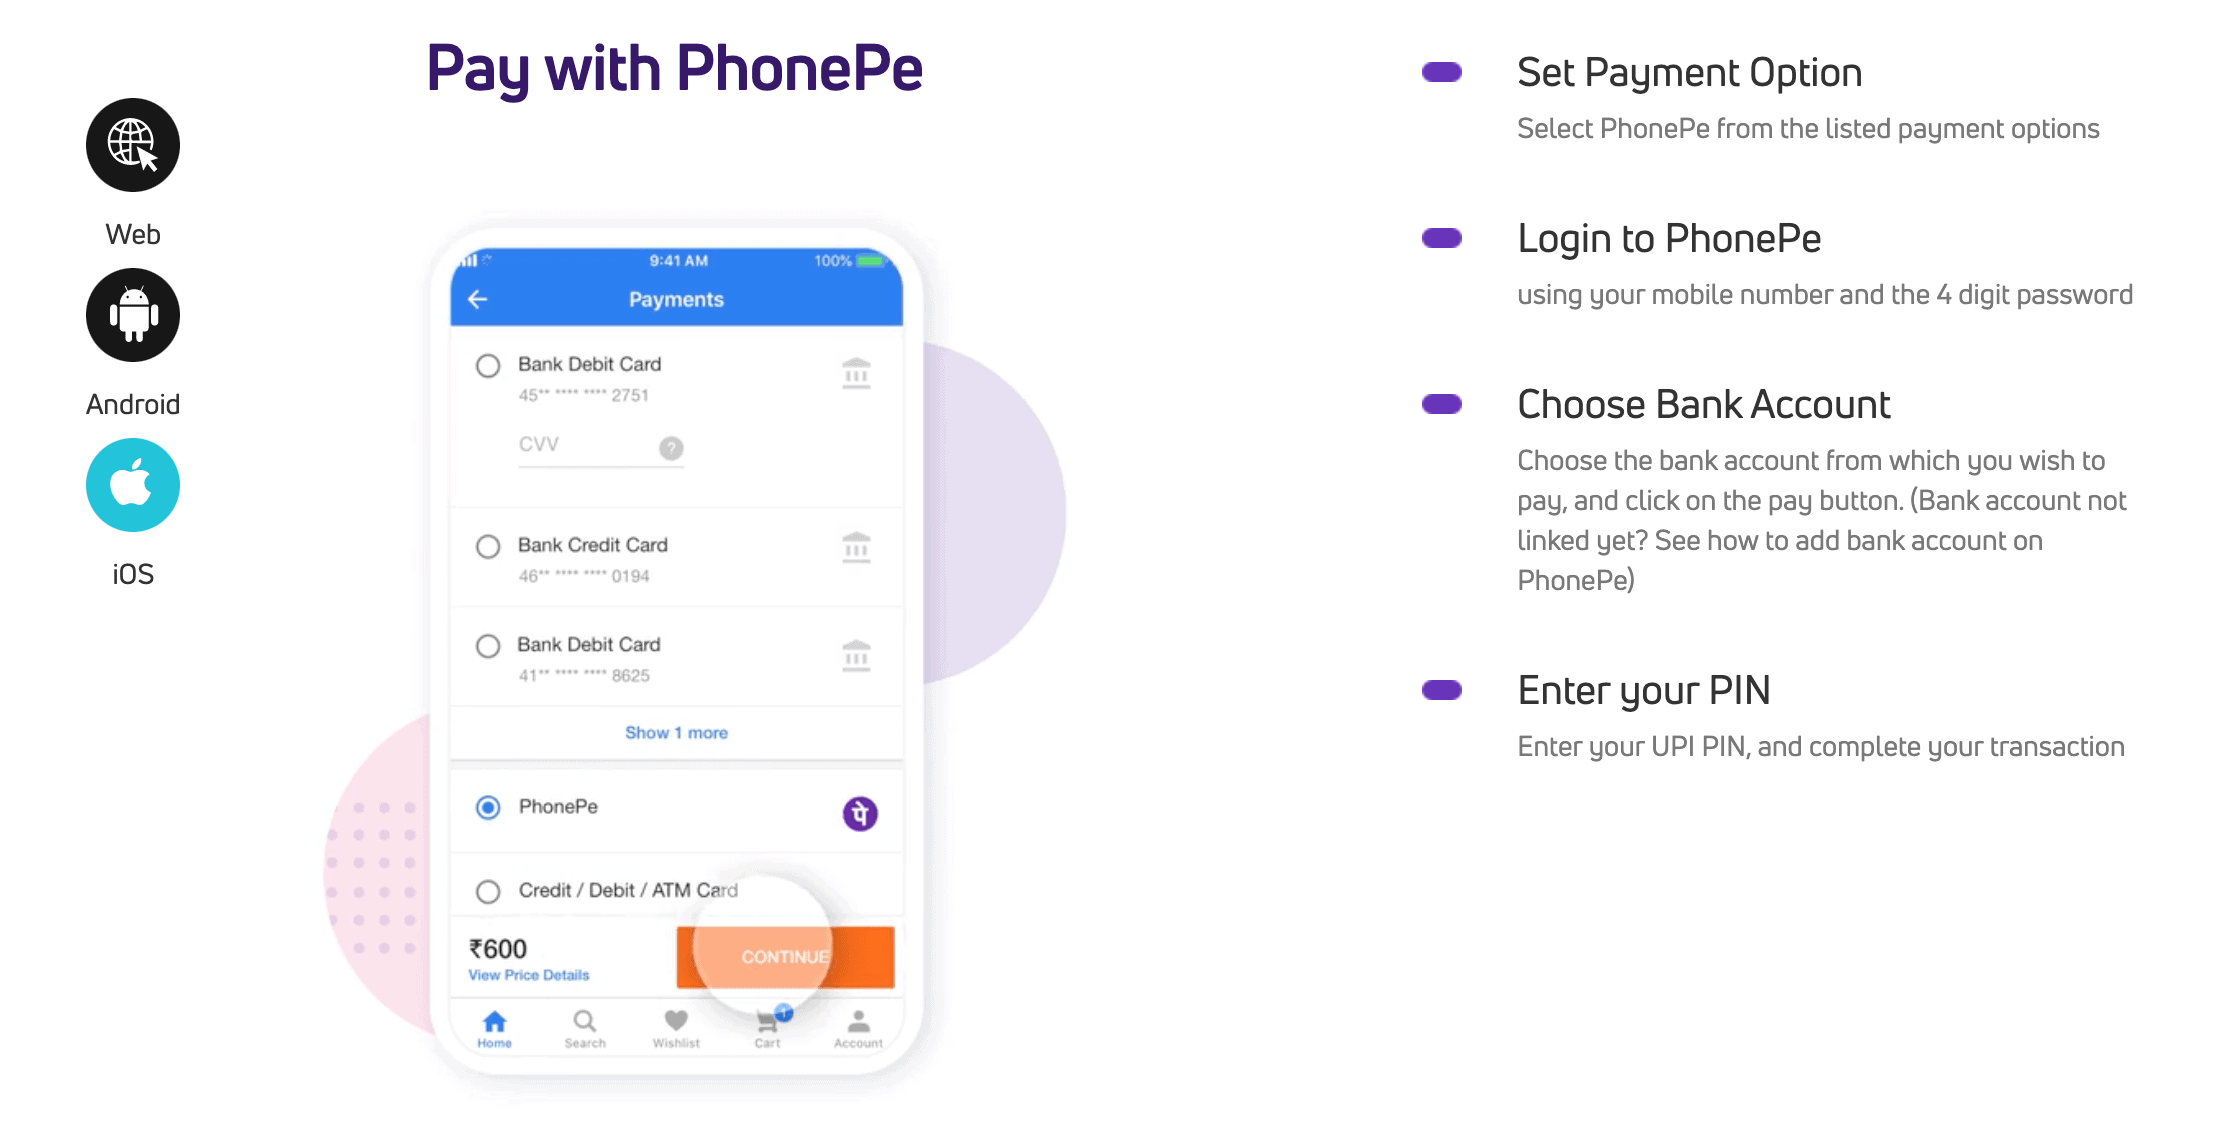 Screenshot on how to use PhonePe on iOS devices